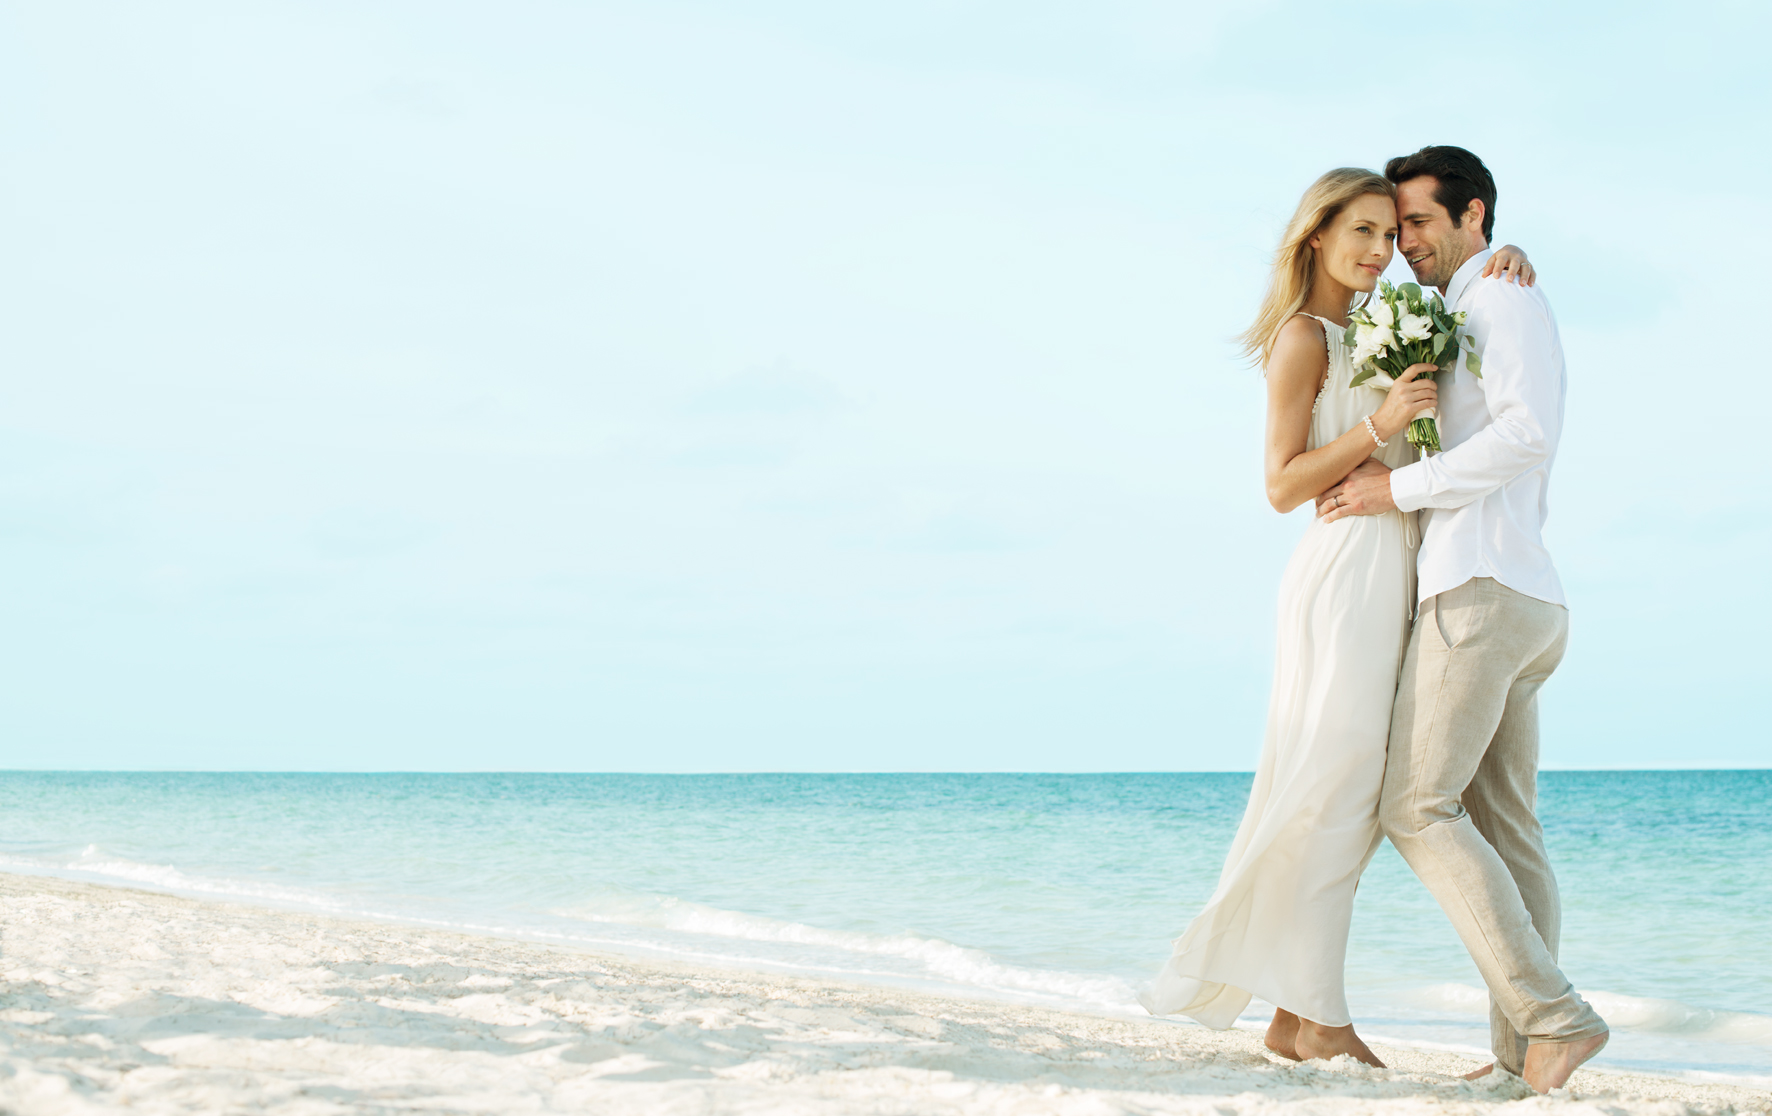 Start Happily Ever After at The Beloved Hotel Playa Mujeres and Finest Playa Mujeres by Excellence Group